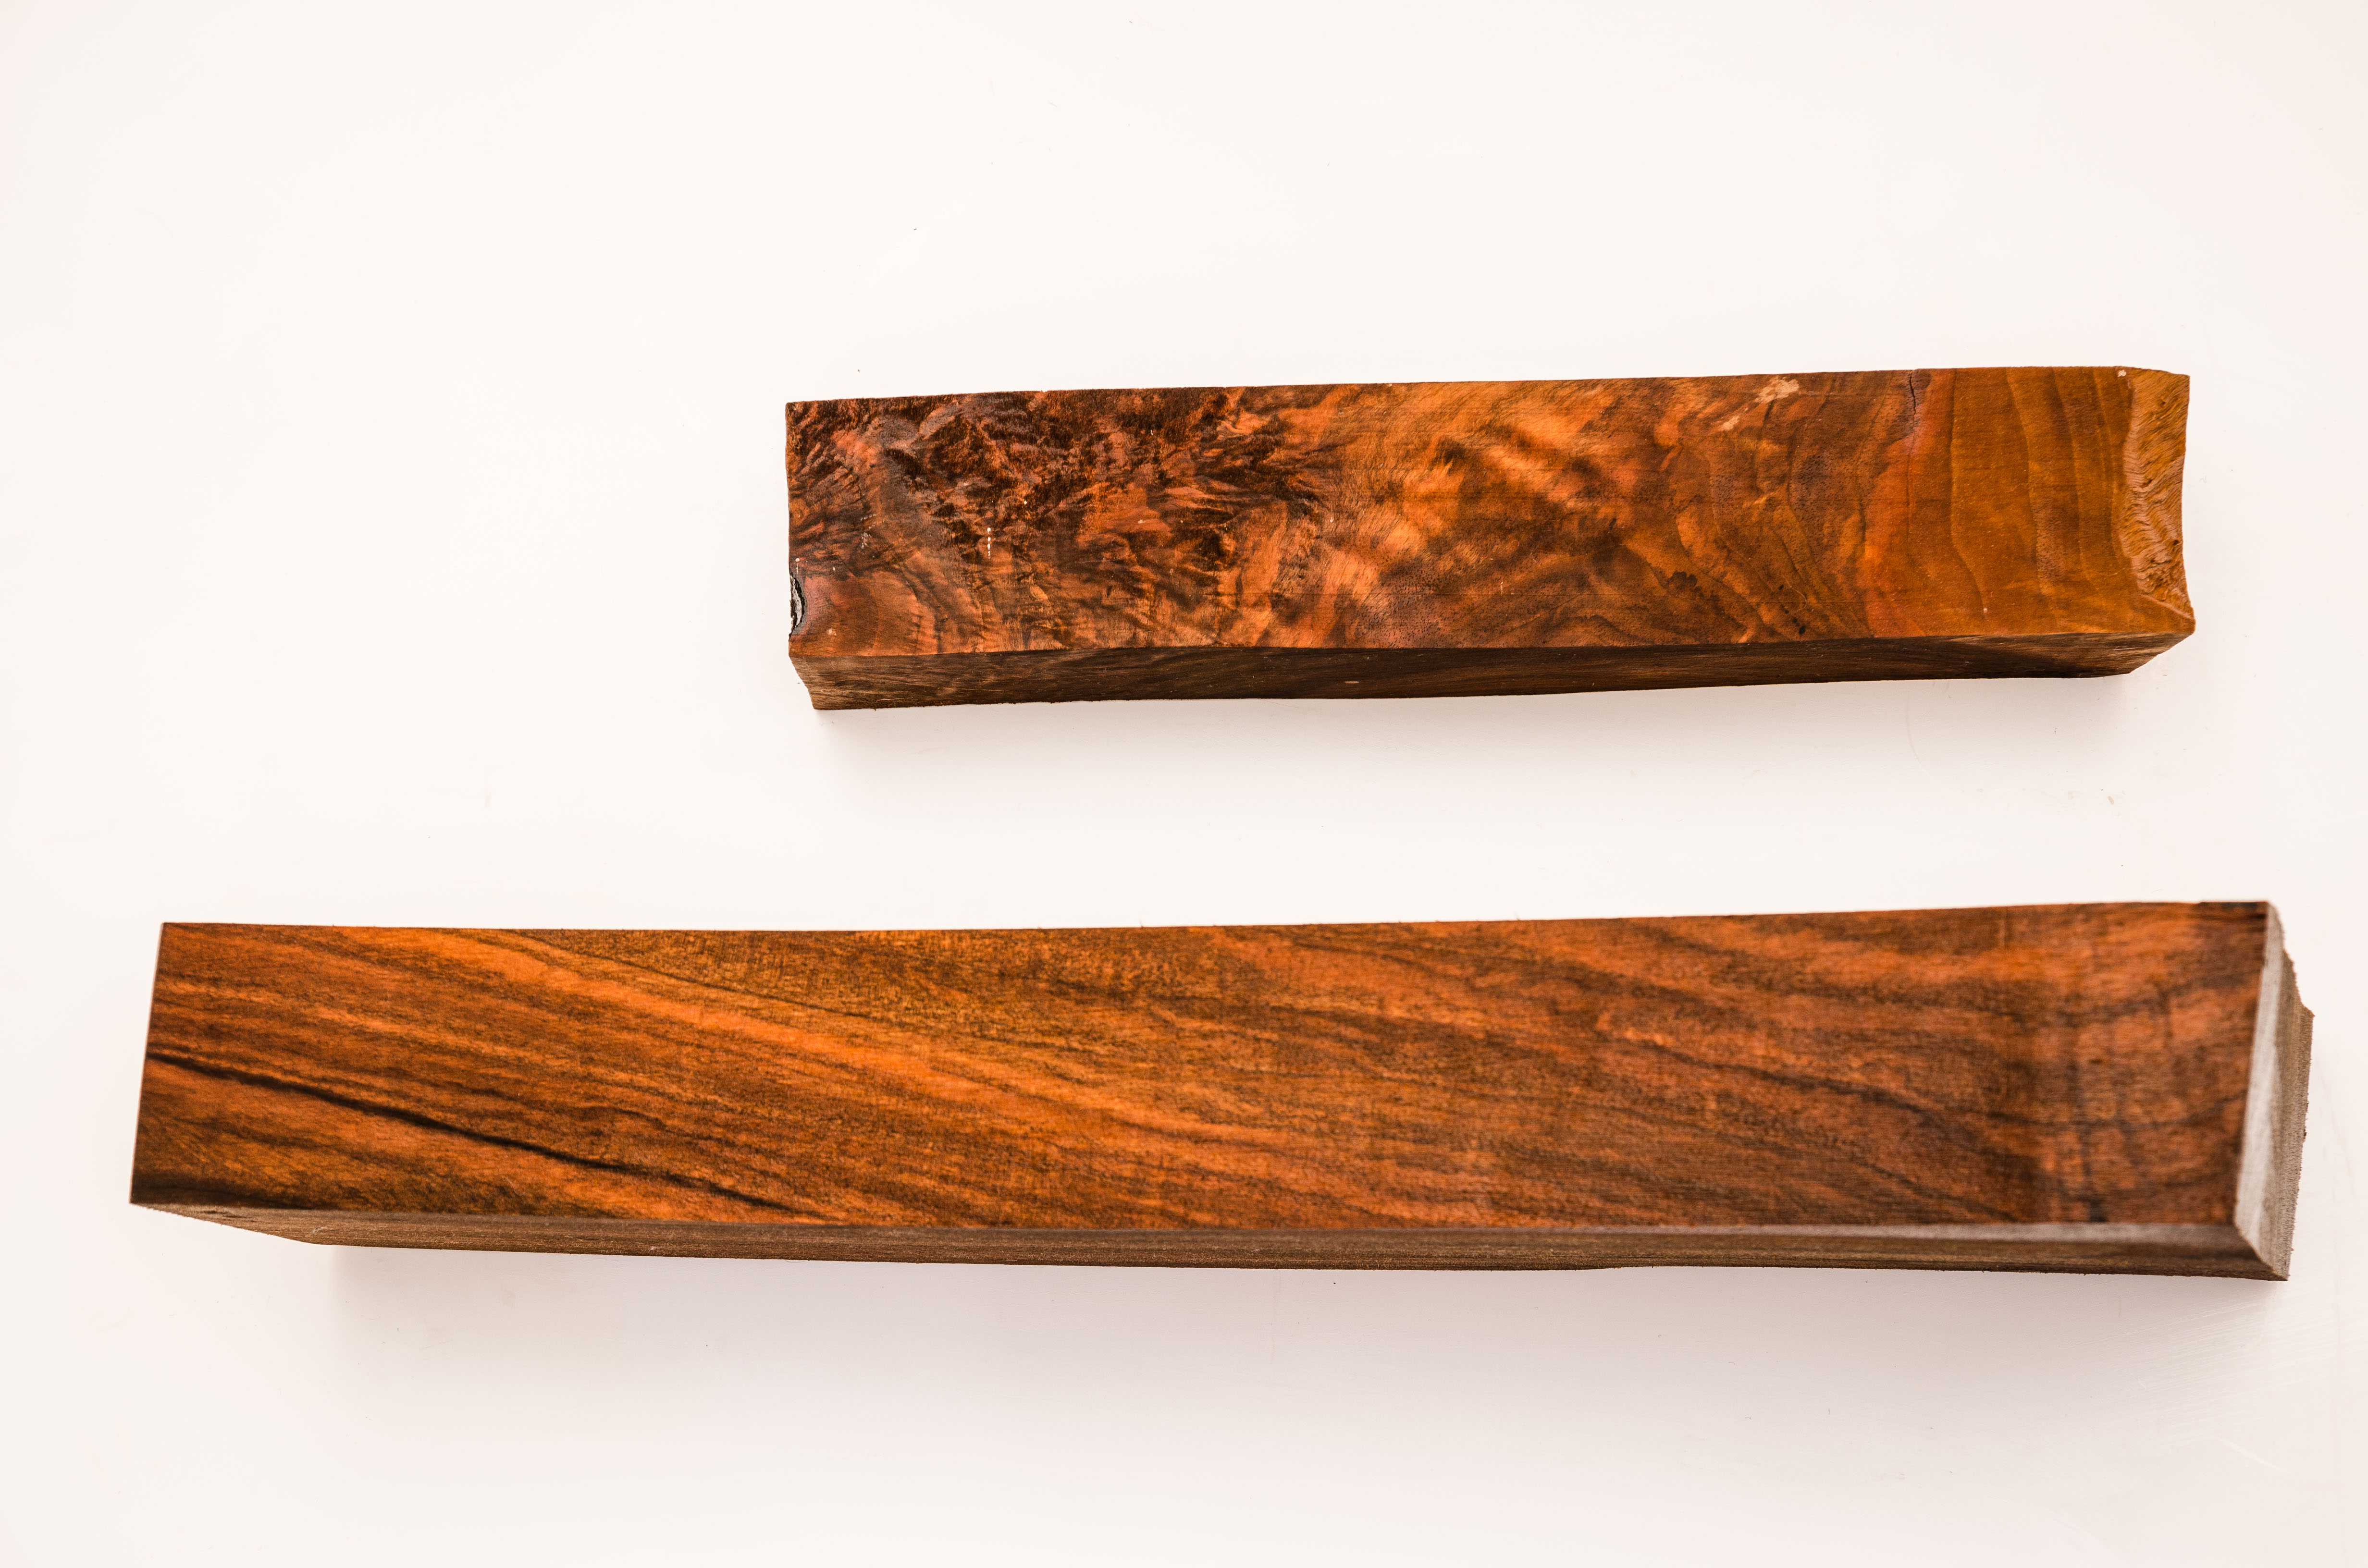 walnut_stock_blanks_for_guns_and_rifles-0549